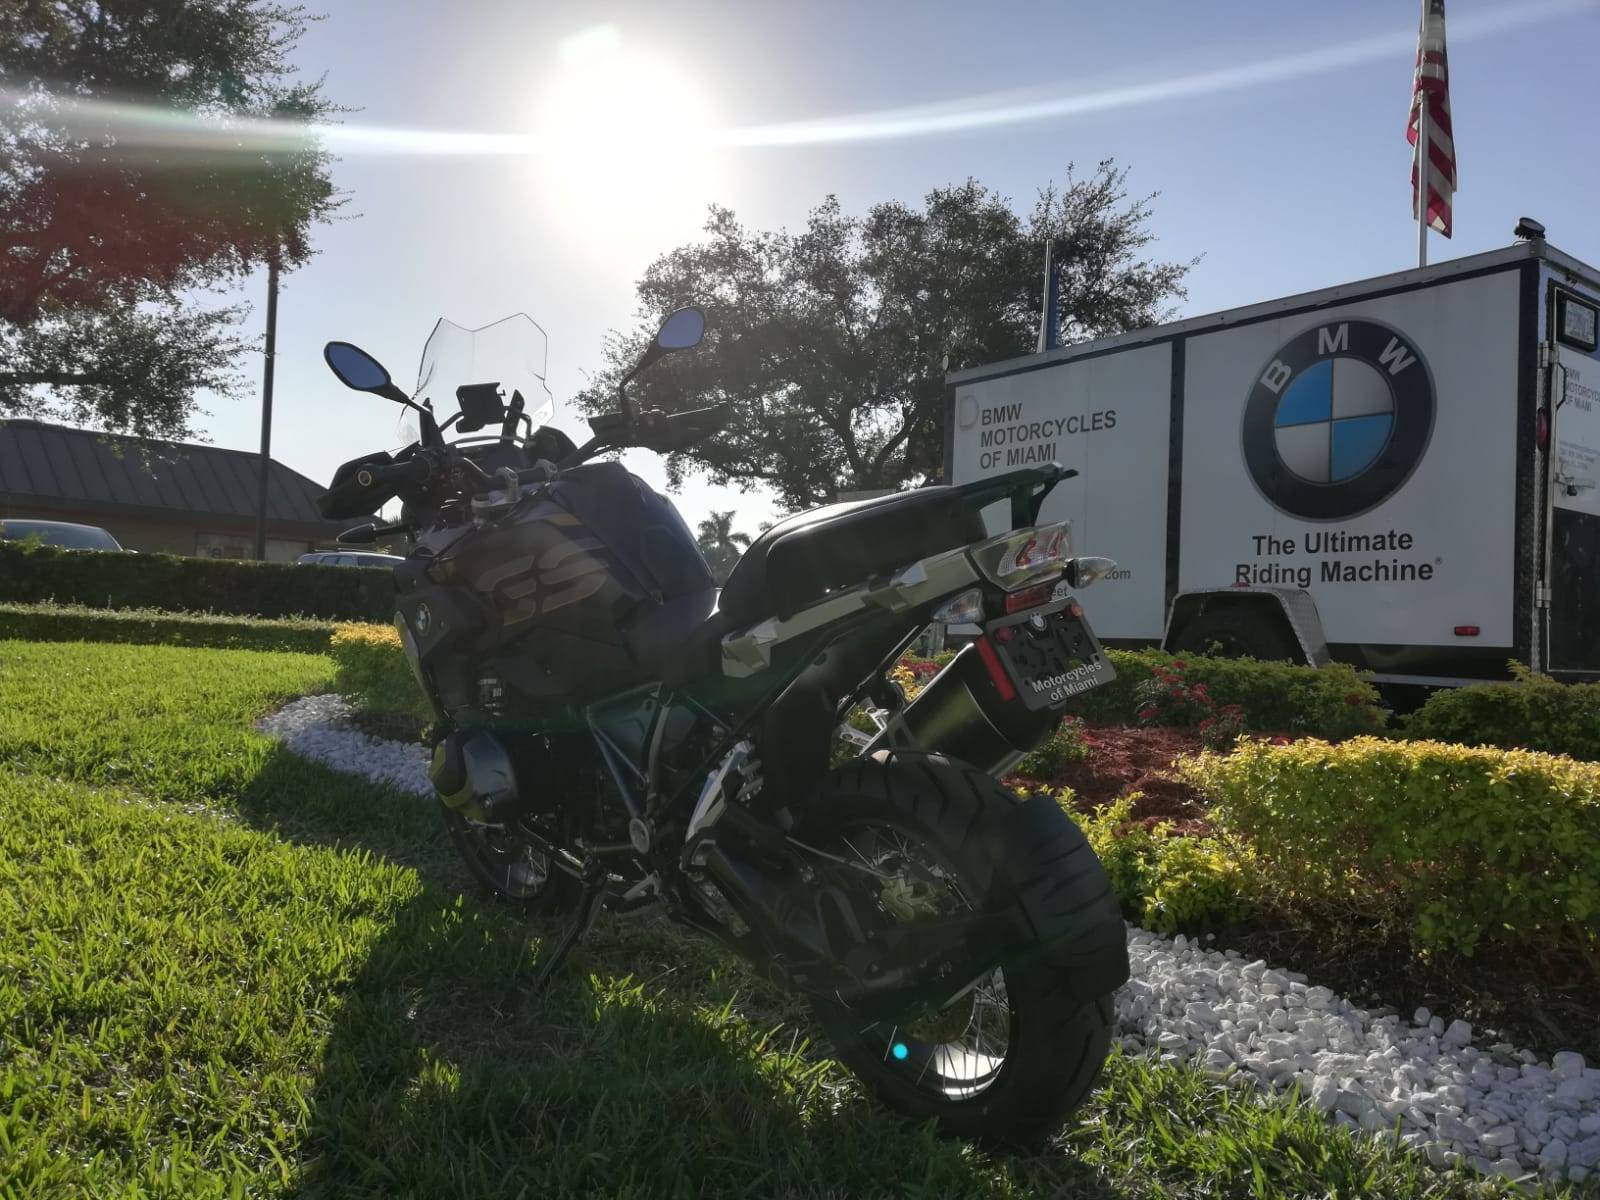 New 2019 BMW R 1250 GS for sale, BMW R 1250GS for sale, BMW Motorcycle GS, new BMW GS, Spirit of GS, BMW Motorcycles of Miami, Motorcycles of Miami, Motorcycles Miami, New Motorcycles, Used Motorcycles, pre-owned. #BMWMotorcyclesOfMiami #MotorcyclesOfMiami.